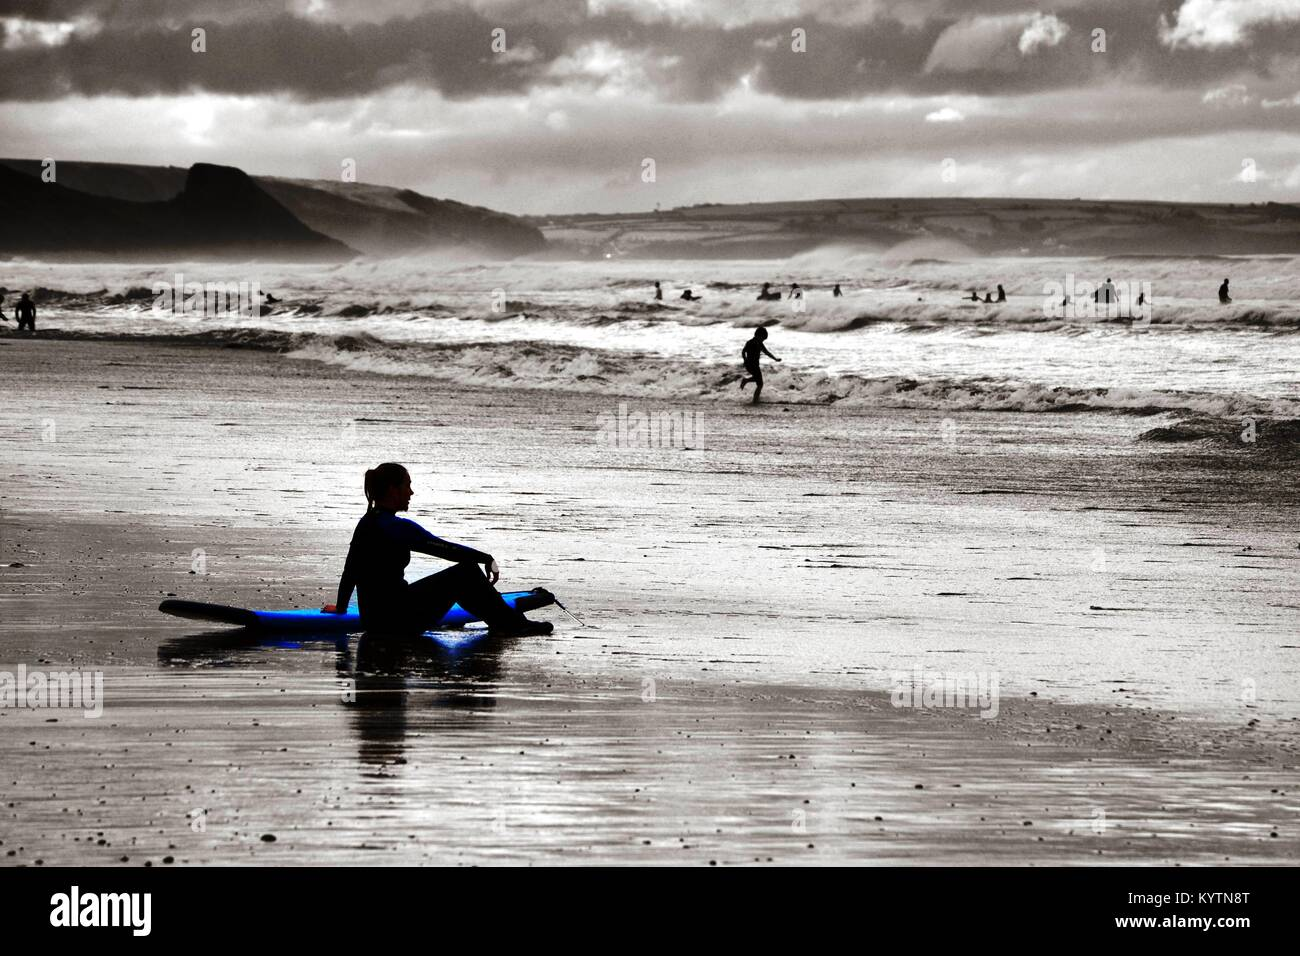 Surfer resting Newgale beach with high sea and surf during summer storm - Stock Image